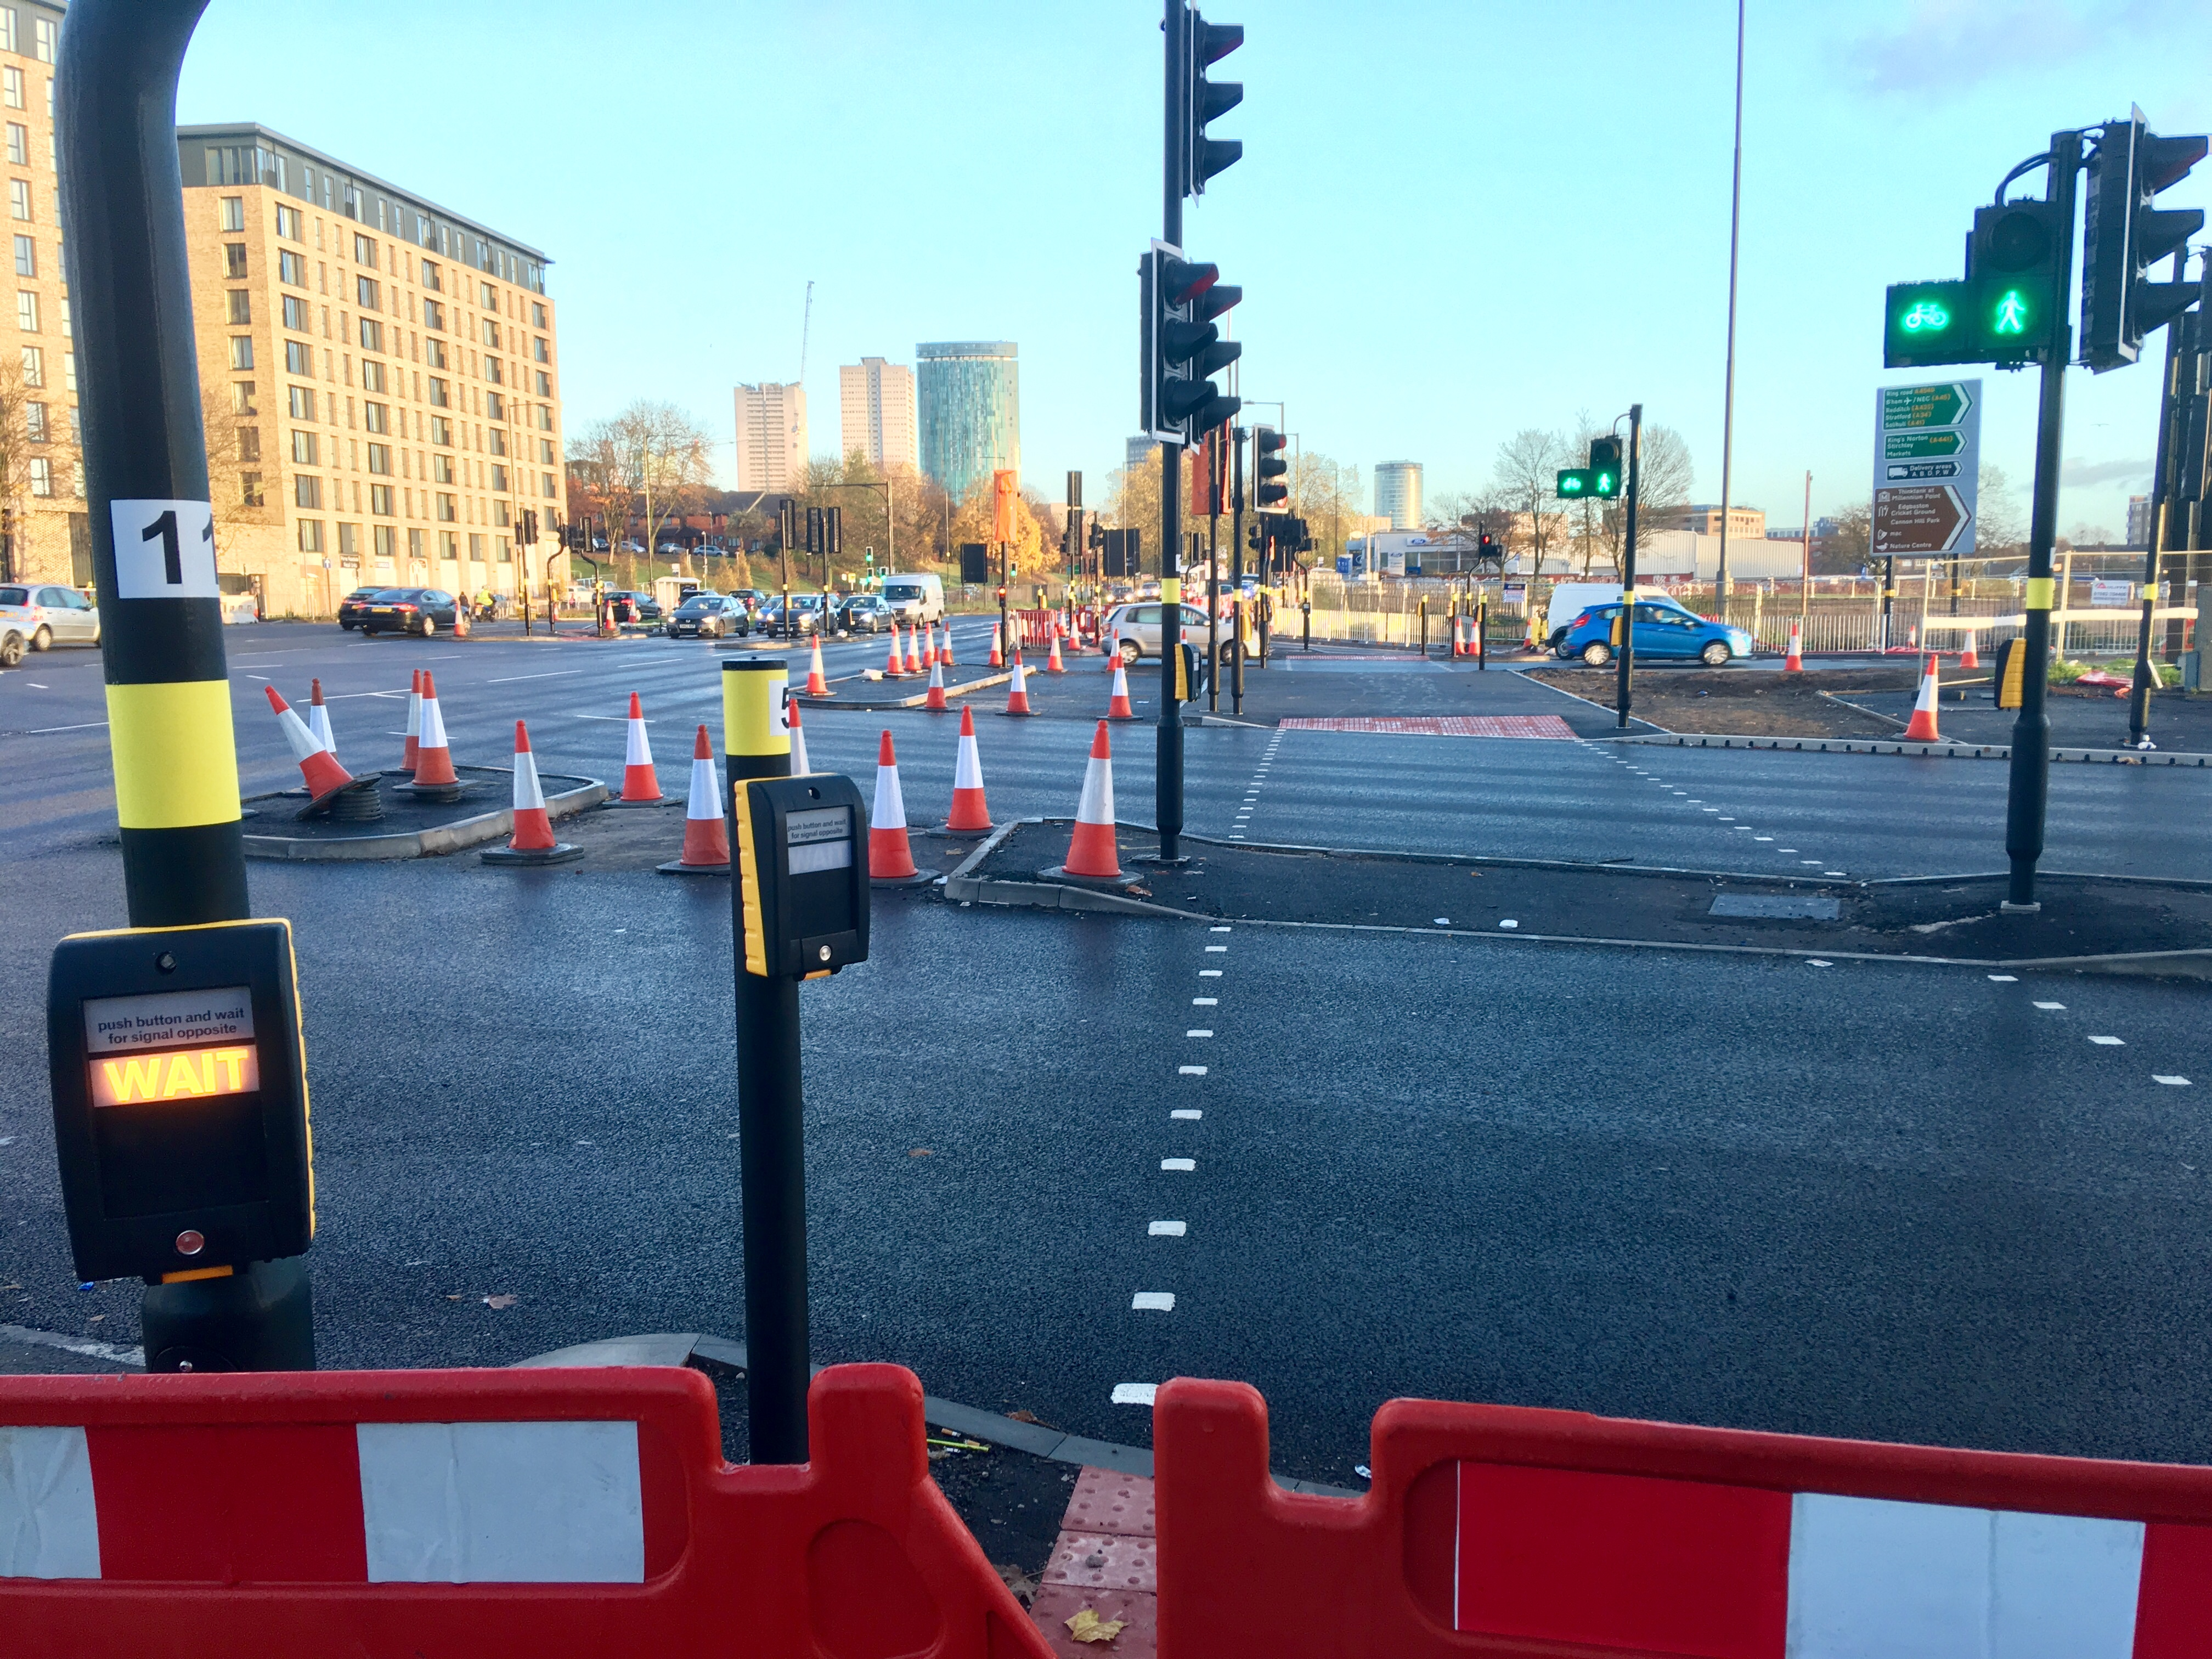 New crossings at Middleway junction with Bristol Road